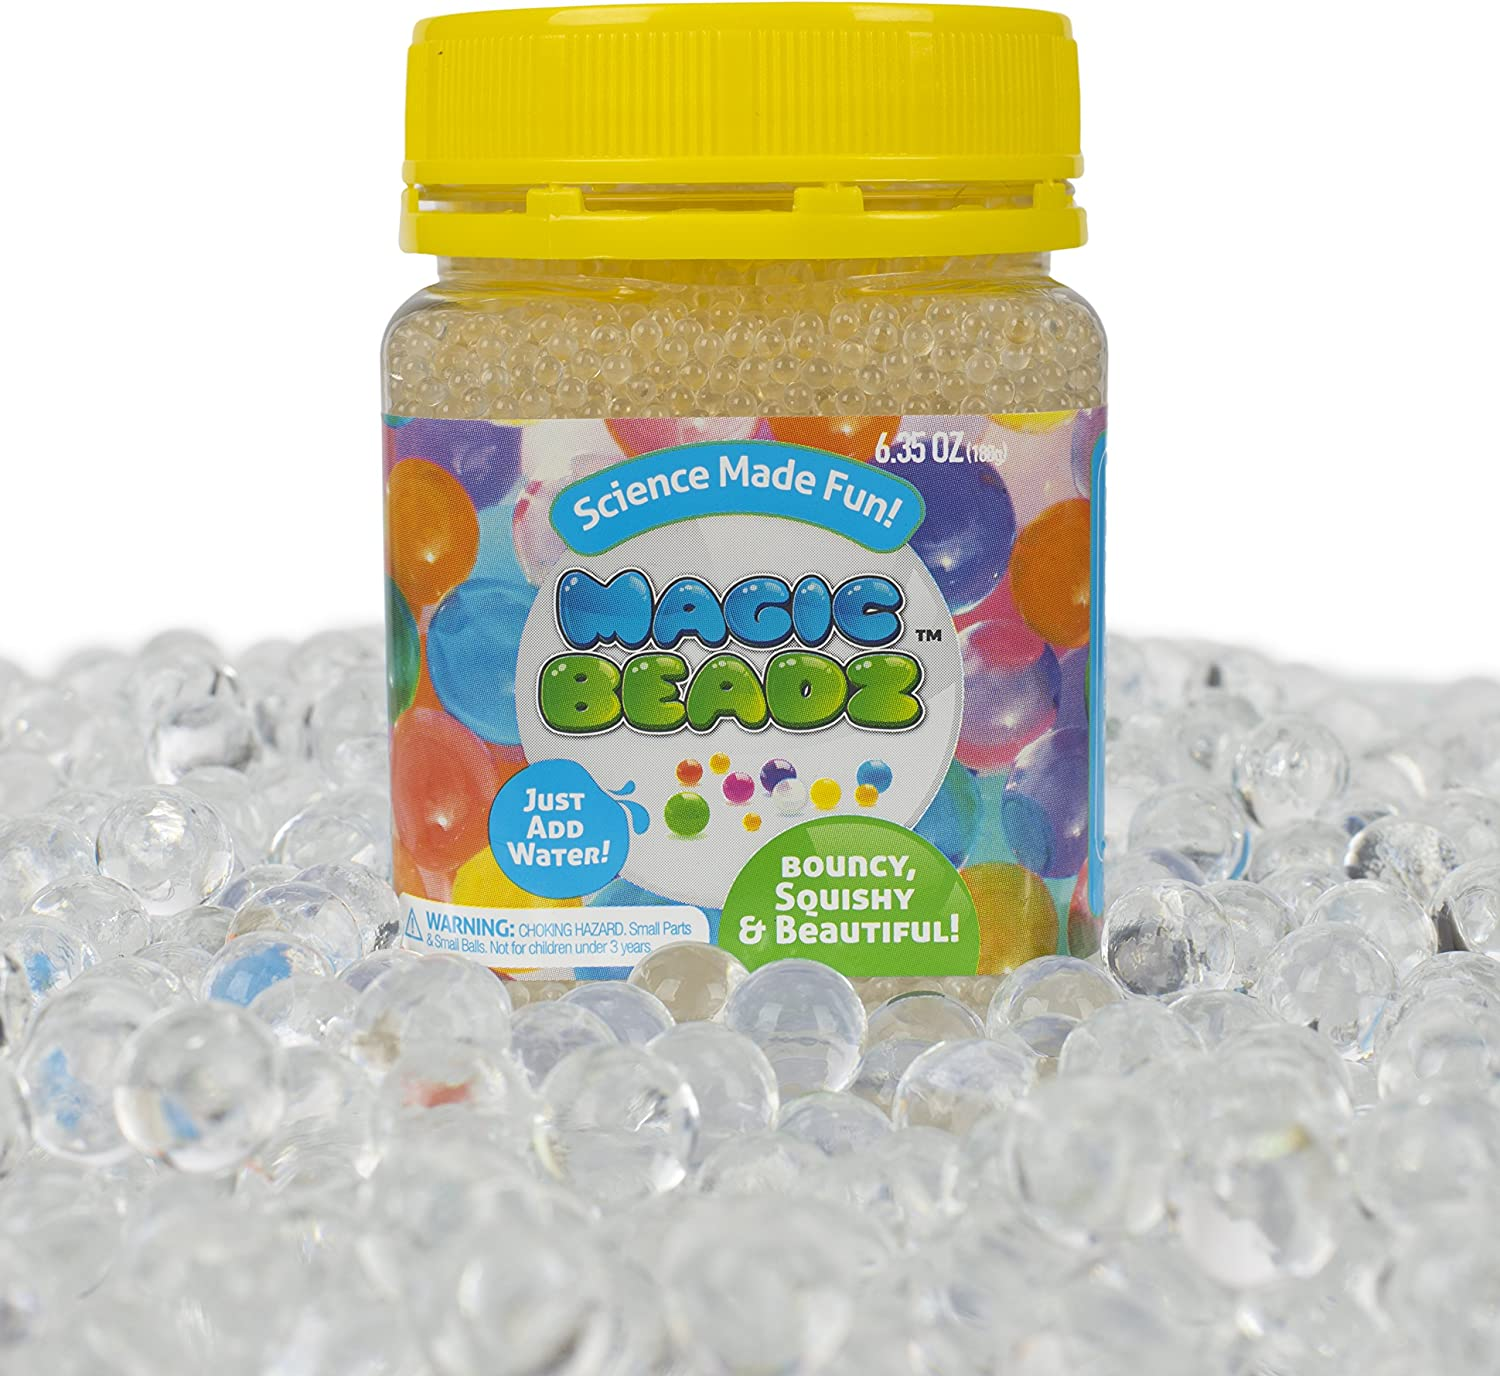 Magic Beadz - Clear Jelly Water Beads - Transparent Gel Pearls - Vase Filler - Wedding Centerpiece - Candles - Flower Arrangements - Over 20,000 Beads - Makes Over Six Gallons